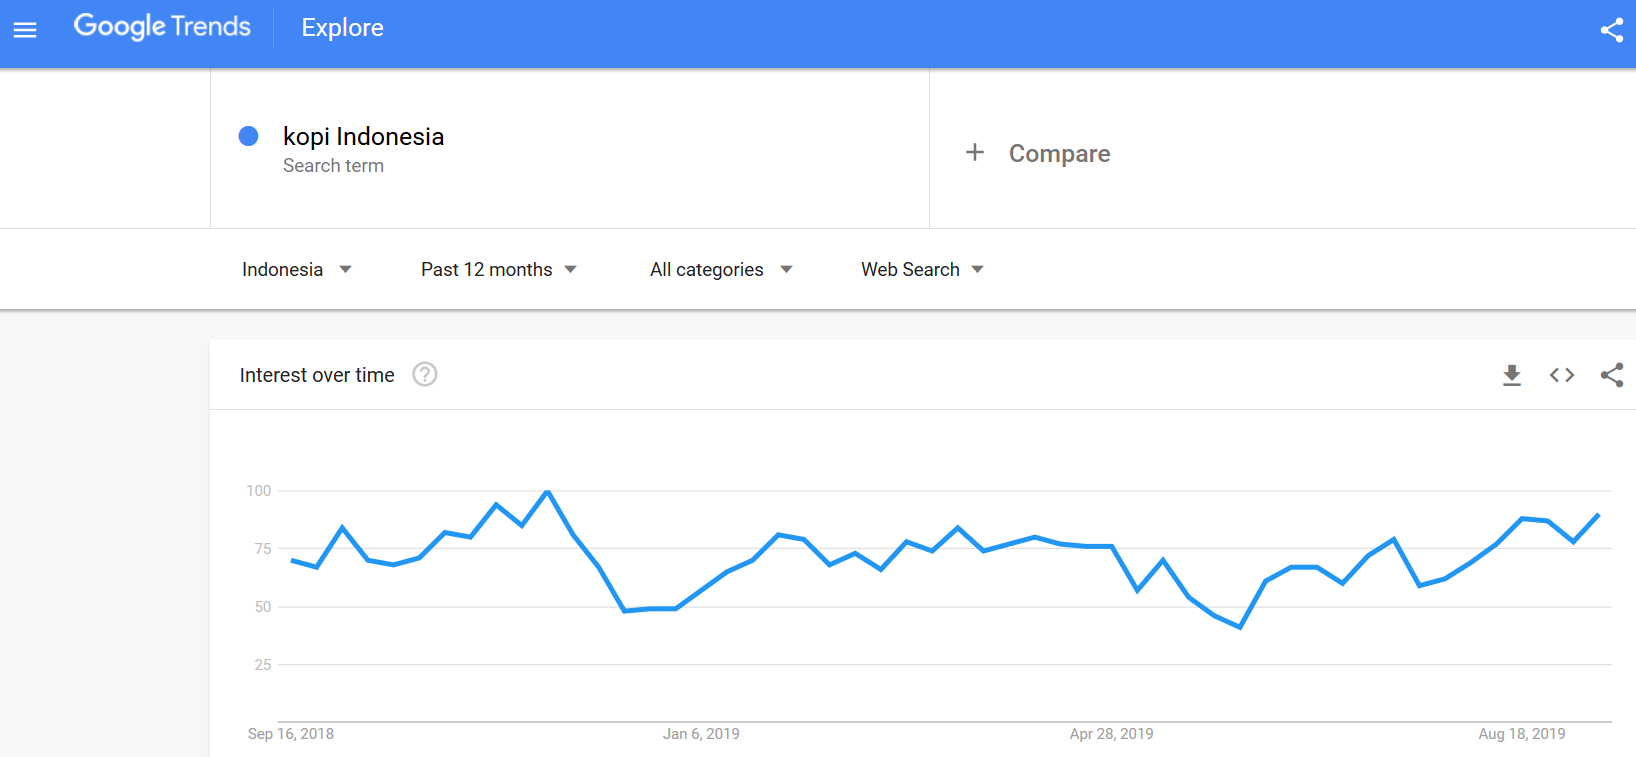 pencarian keyword kopi indonesia via google trends